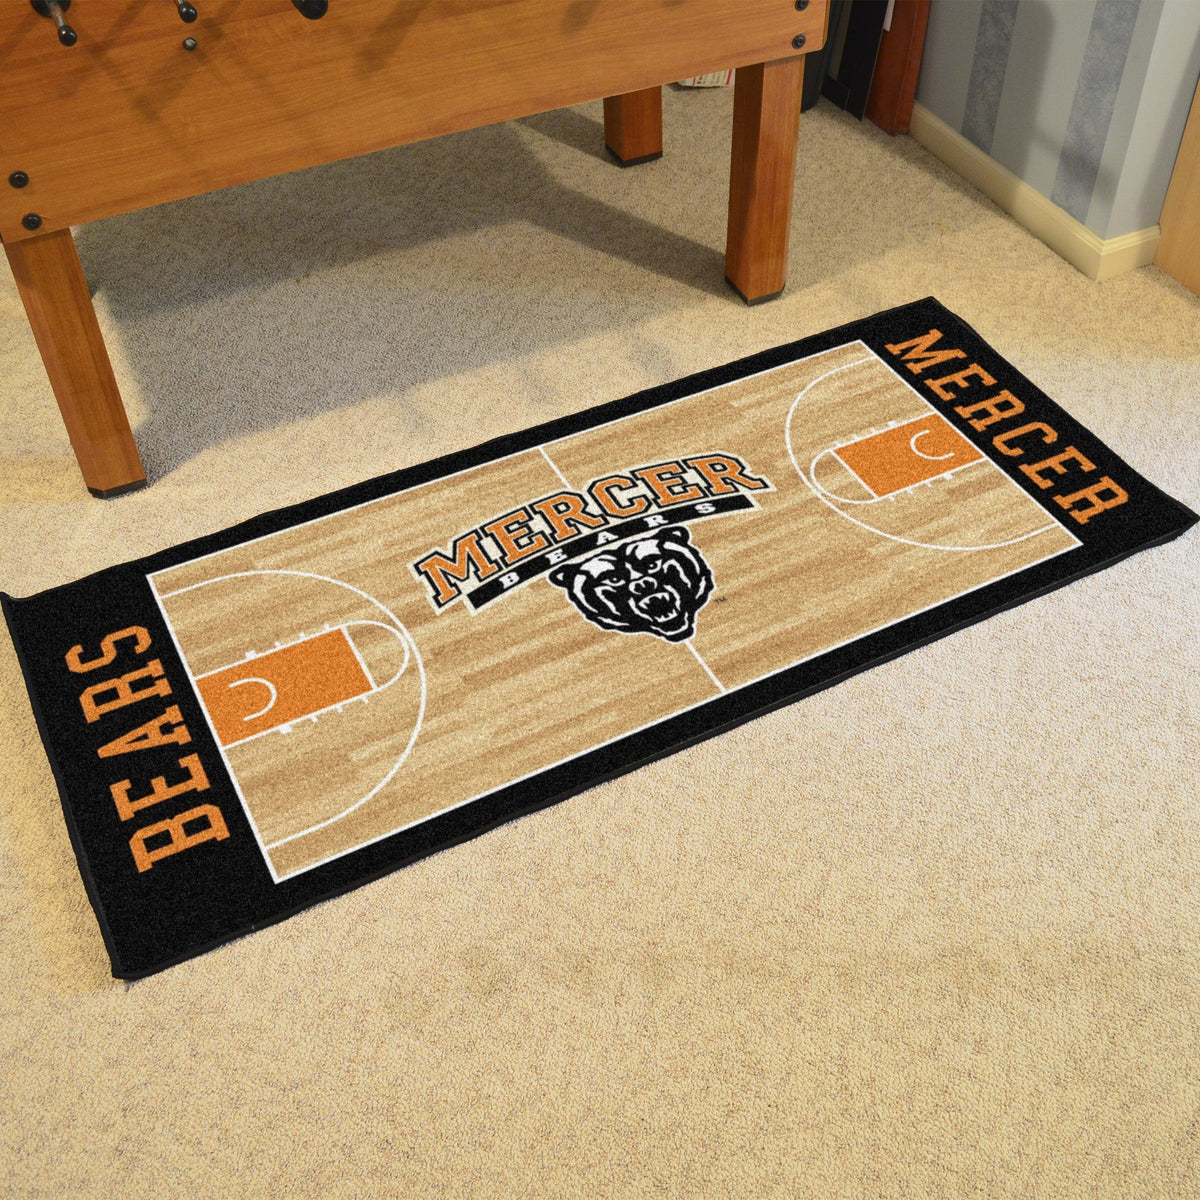 Collegiate - NCAA Basketball Runner Collegiate Mats, Rectangular Mats, NCAA Basketball Runner, Collegiate, Home Fan Mats Mercer